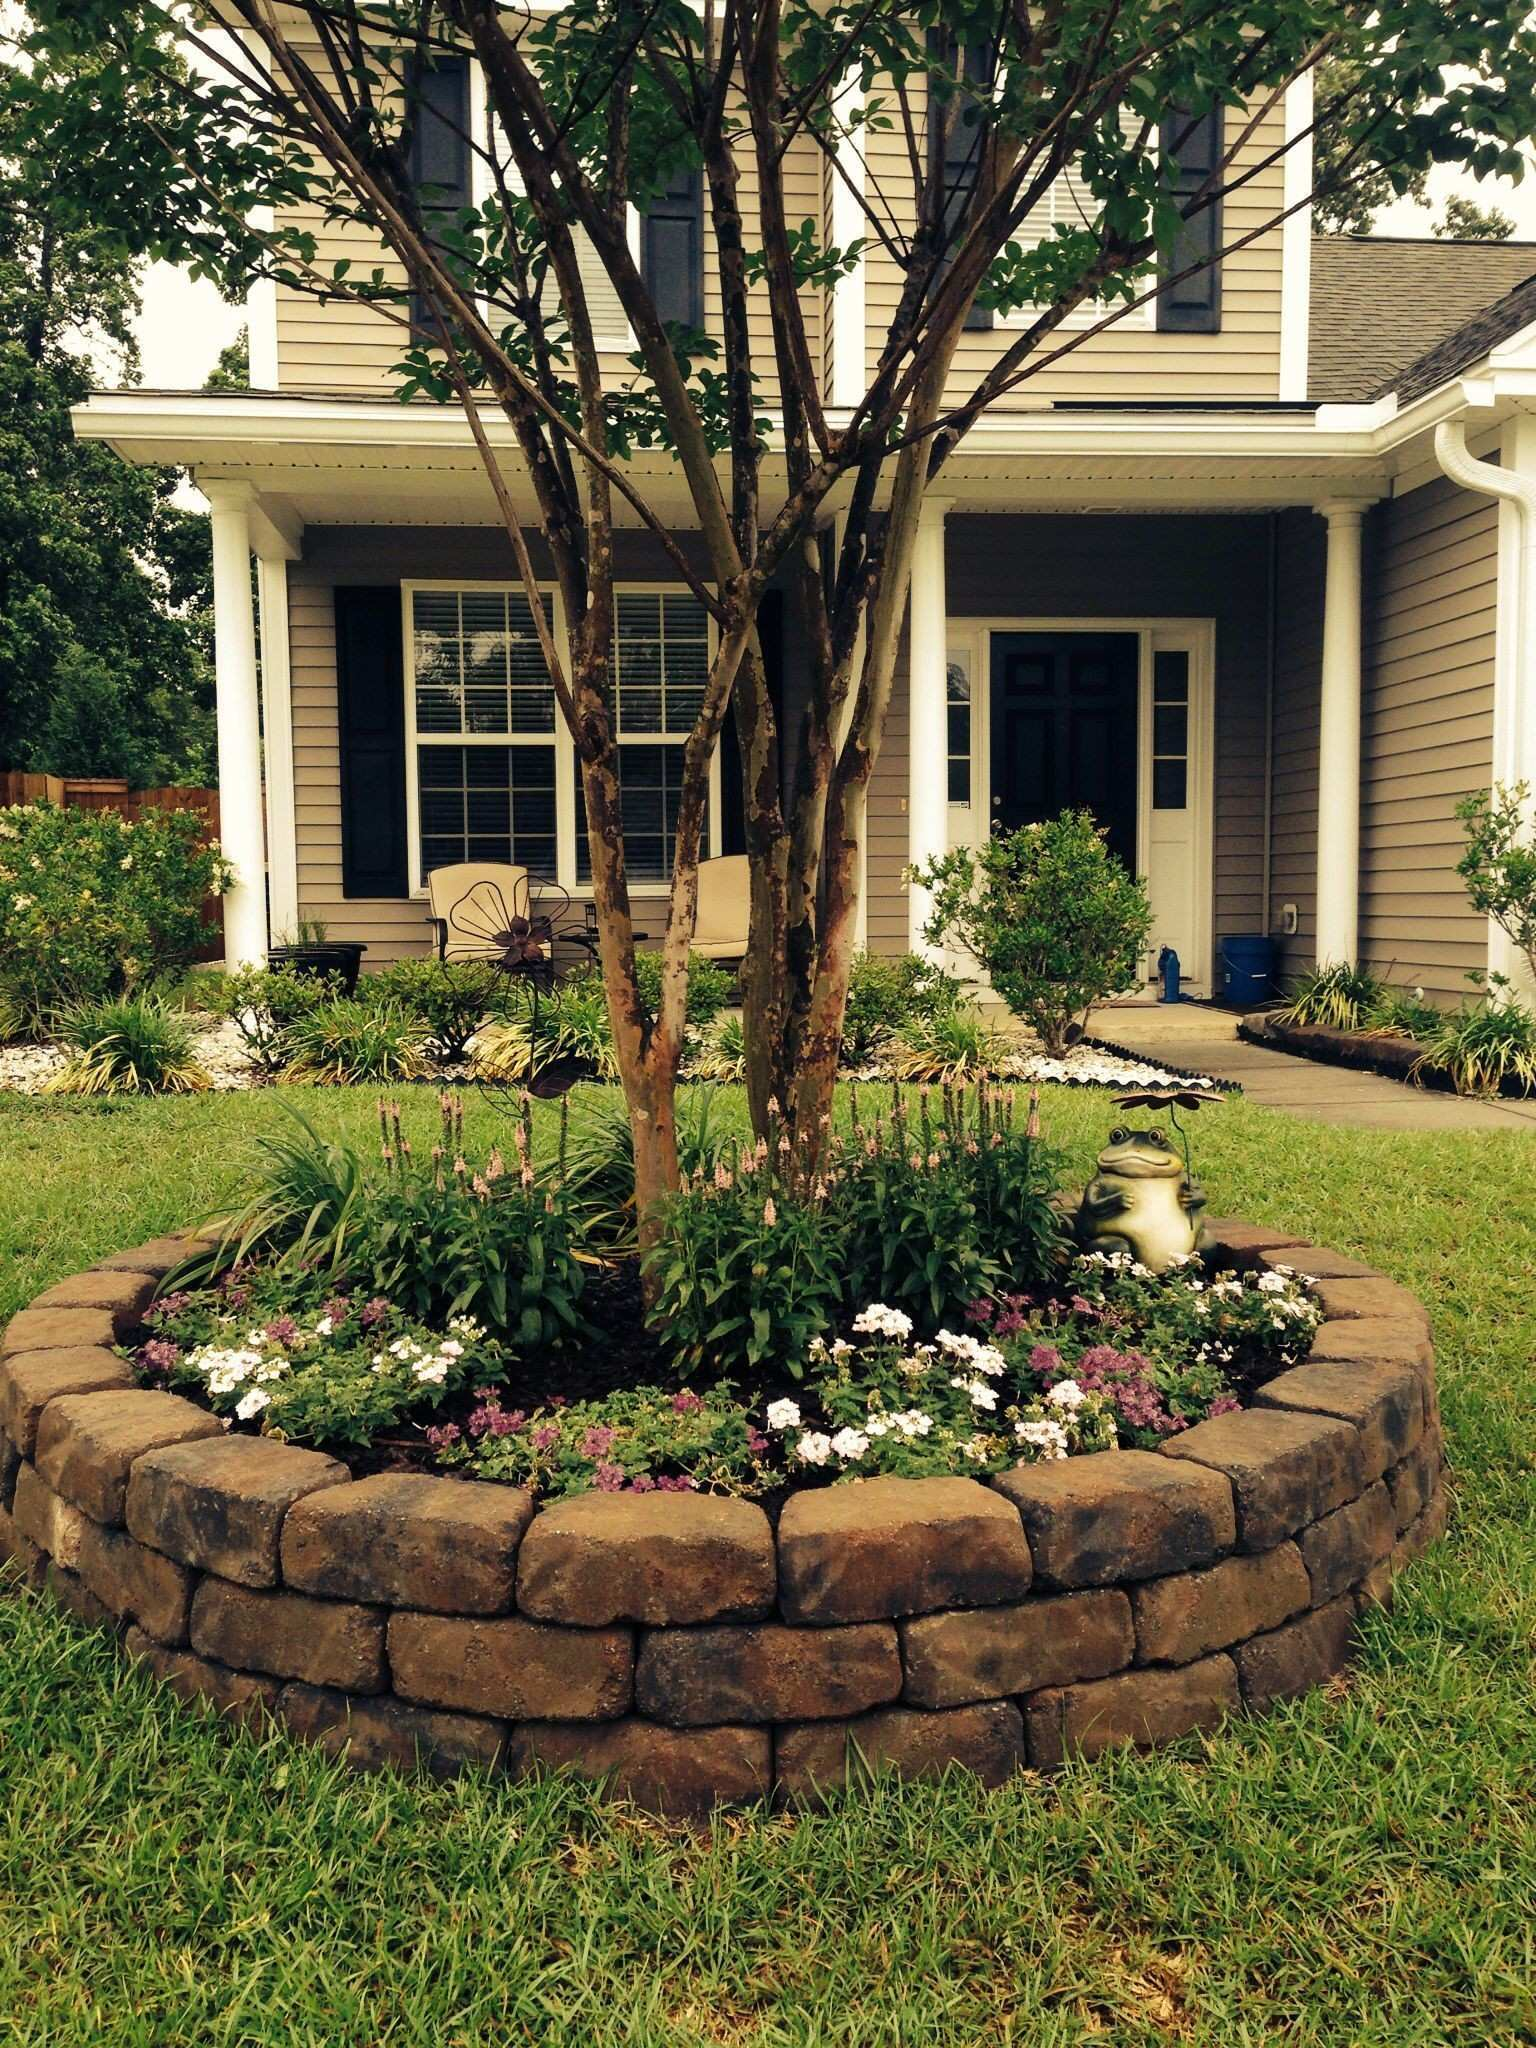 Front yard landscape project good idea to add some pizzazz around